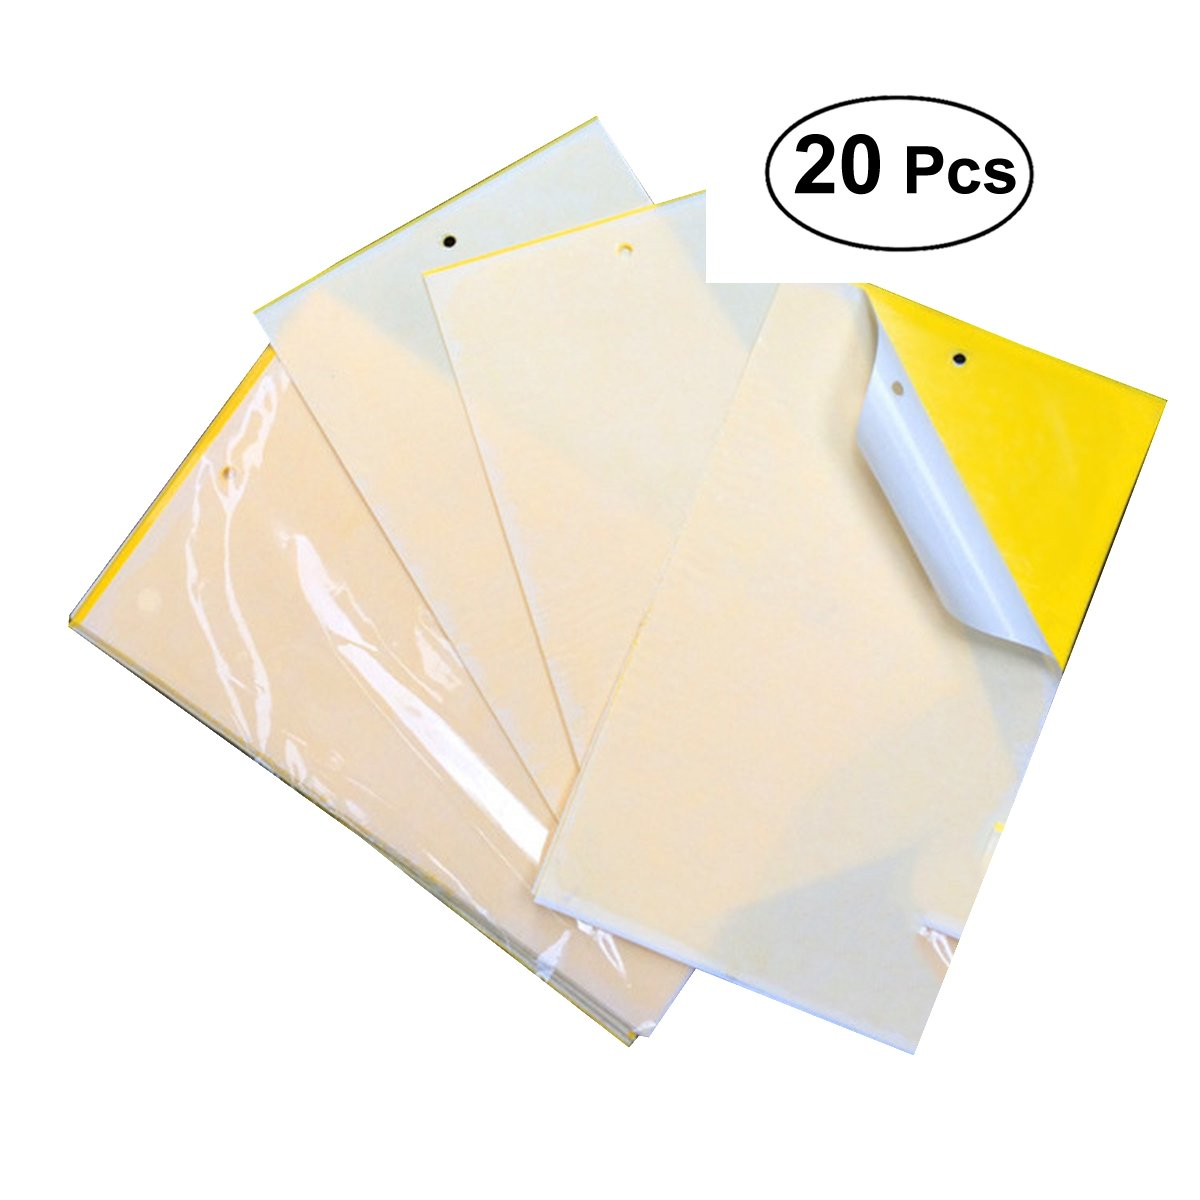 OUNONA 20pcs Dual Sided Yellow Sticky Traps for Plant Insect Like Fungus Gnat,Whitefly,Aphid,Leaf Miner,Other Flying Insectsd,Bugs 25 x 20cm